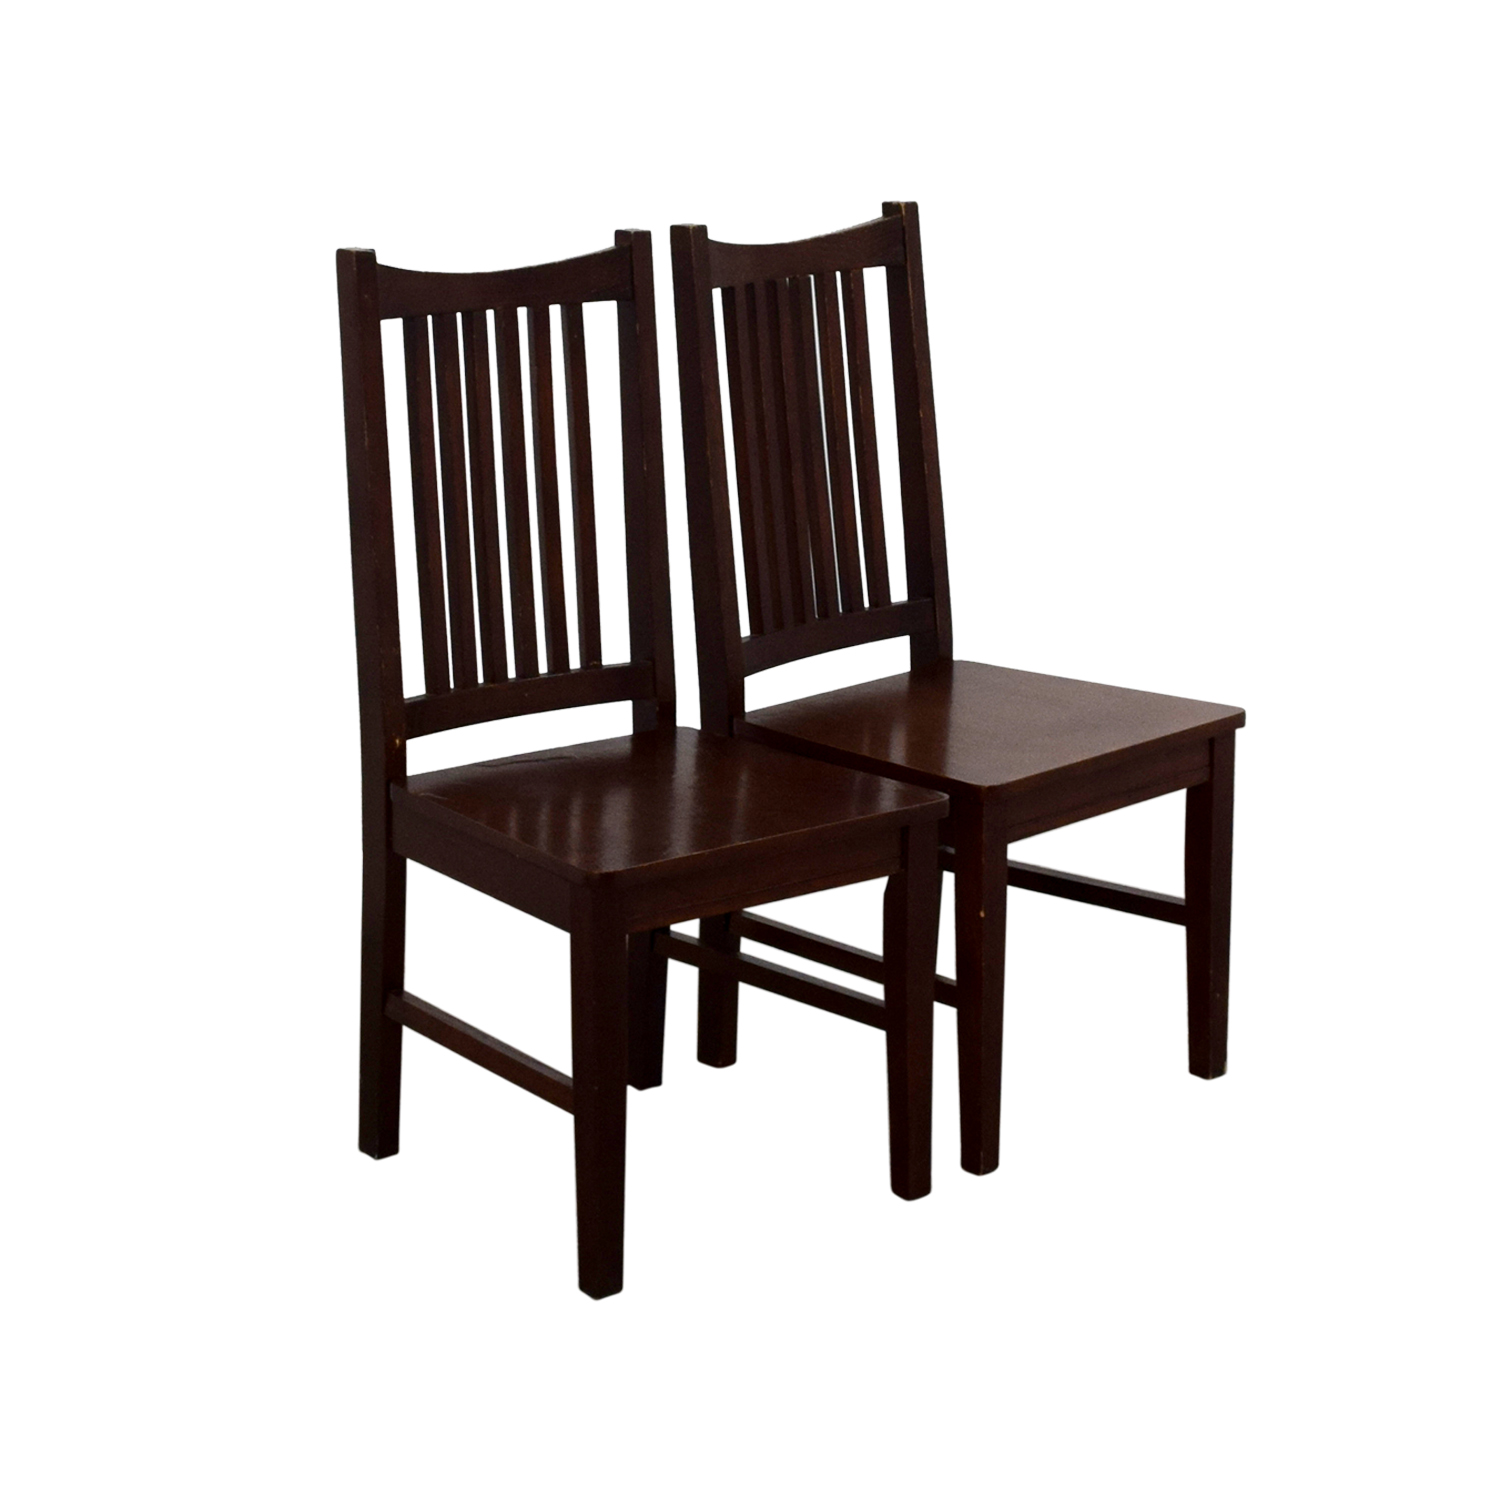 55% OFF Classic Solid Wood Chairs Chairs